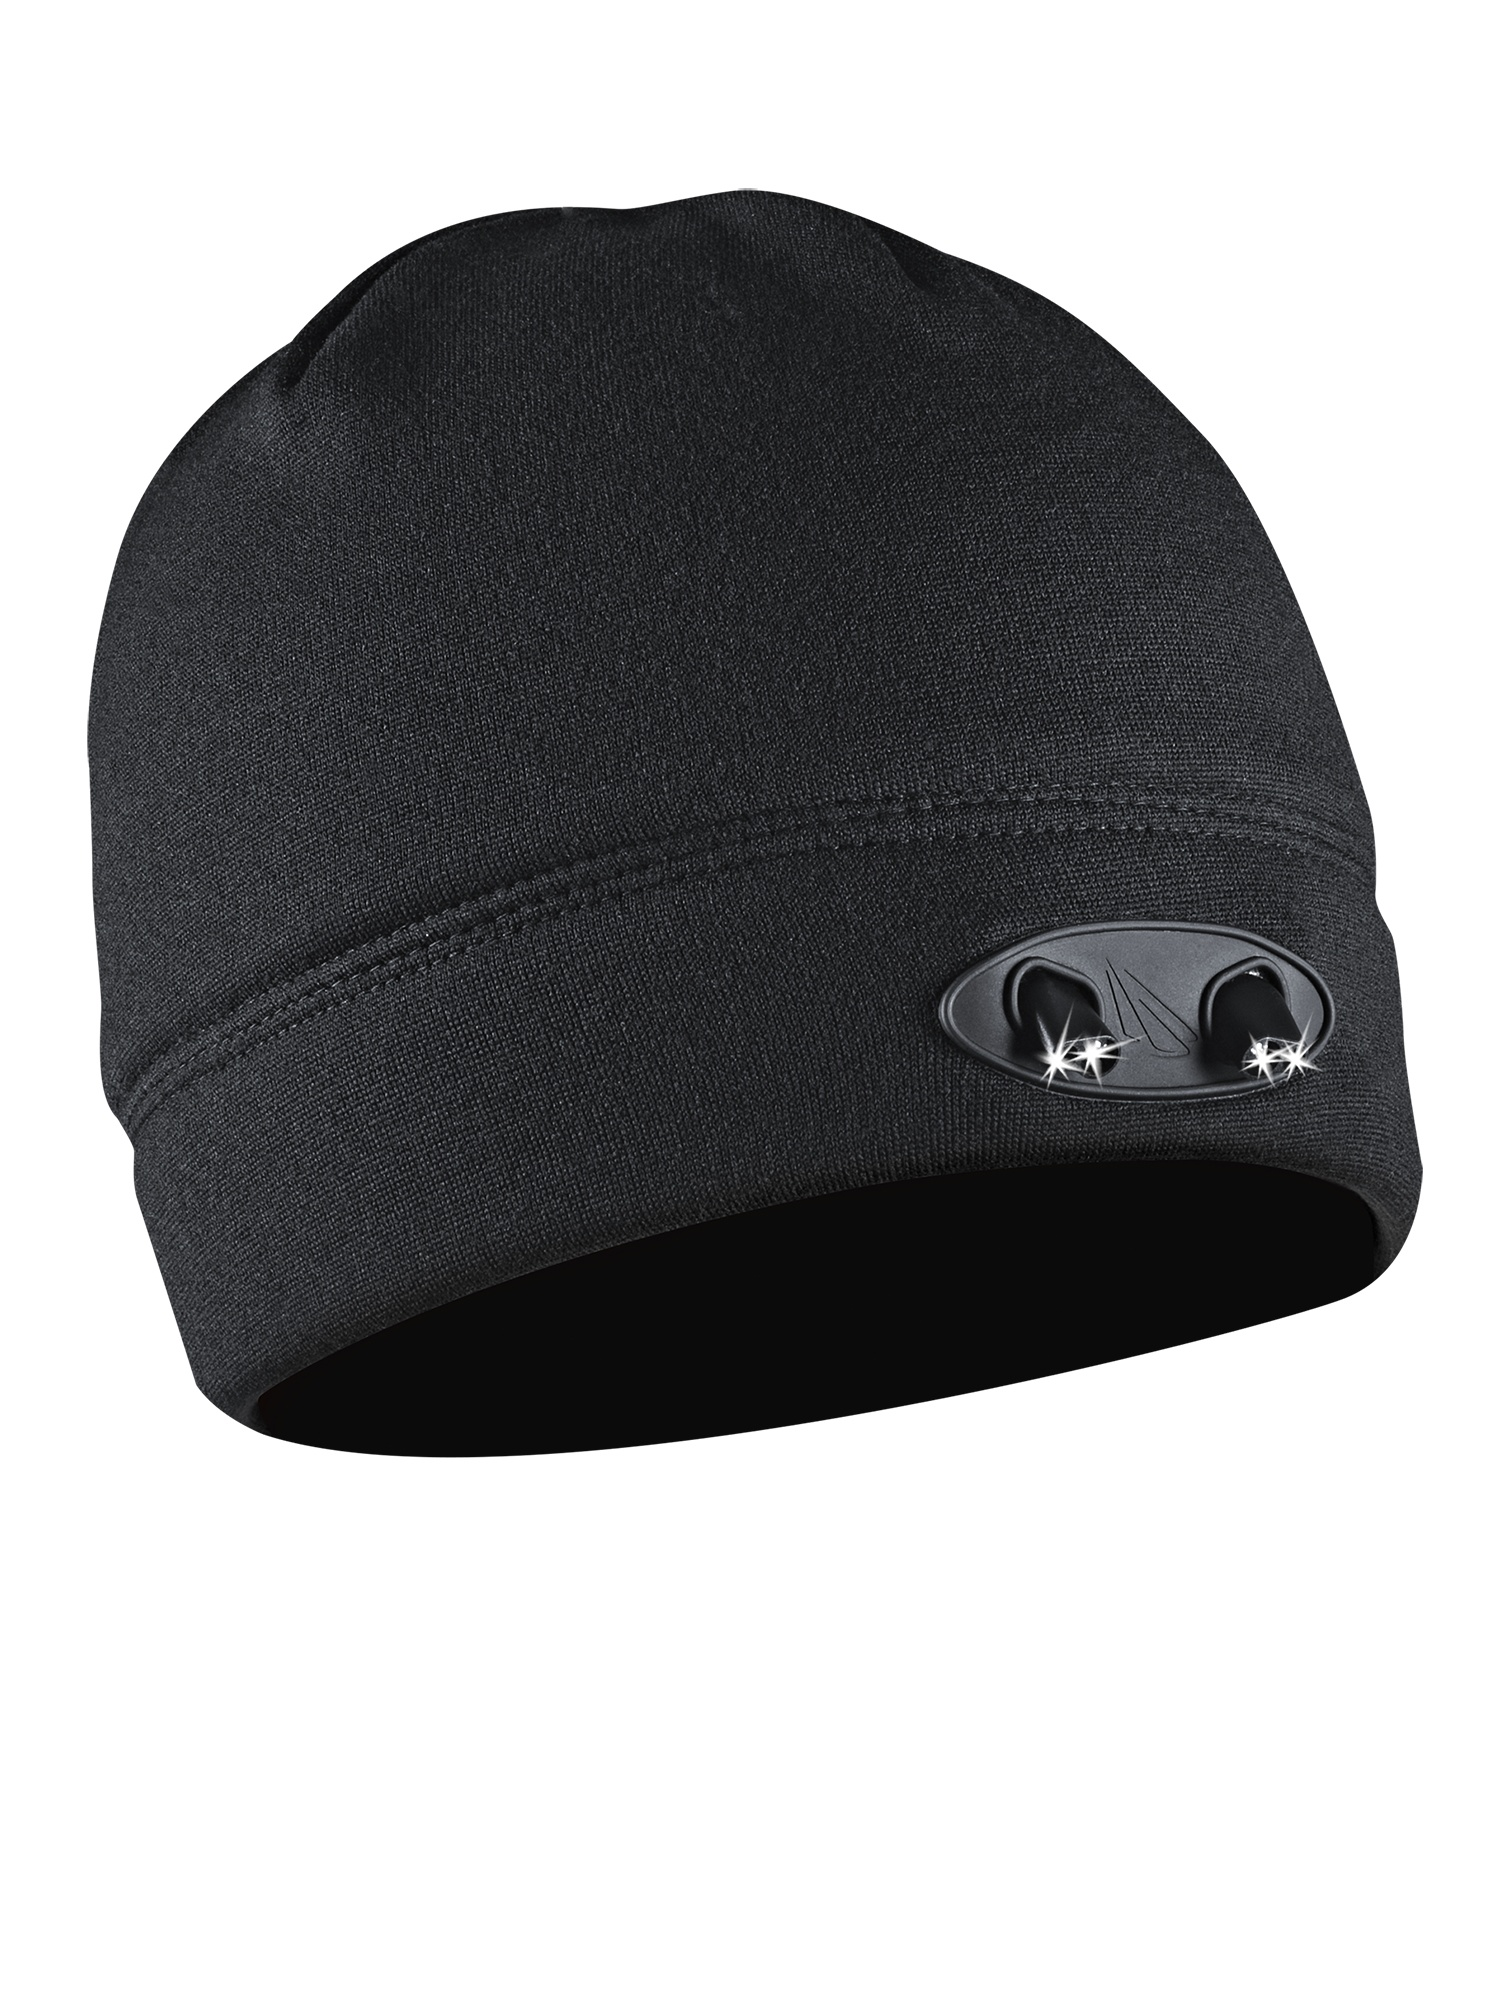 Panther Vision POWERCAP 35/55 Lined Fleece Beanie